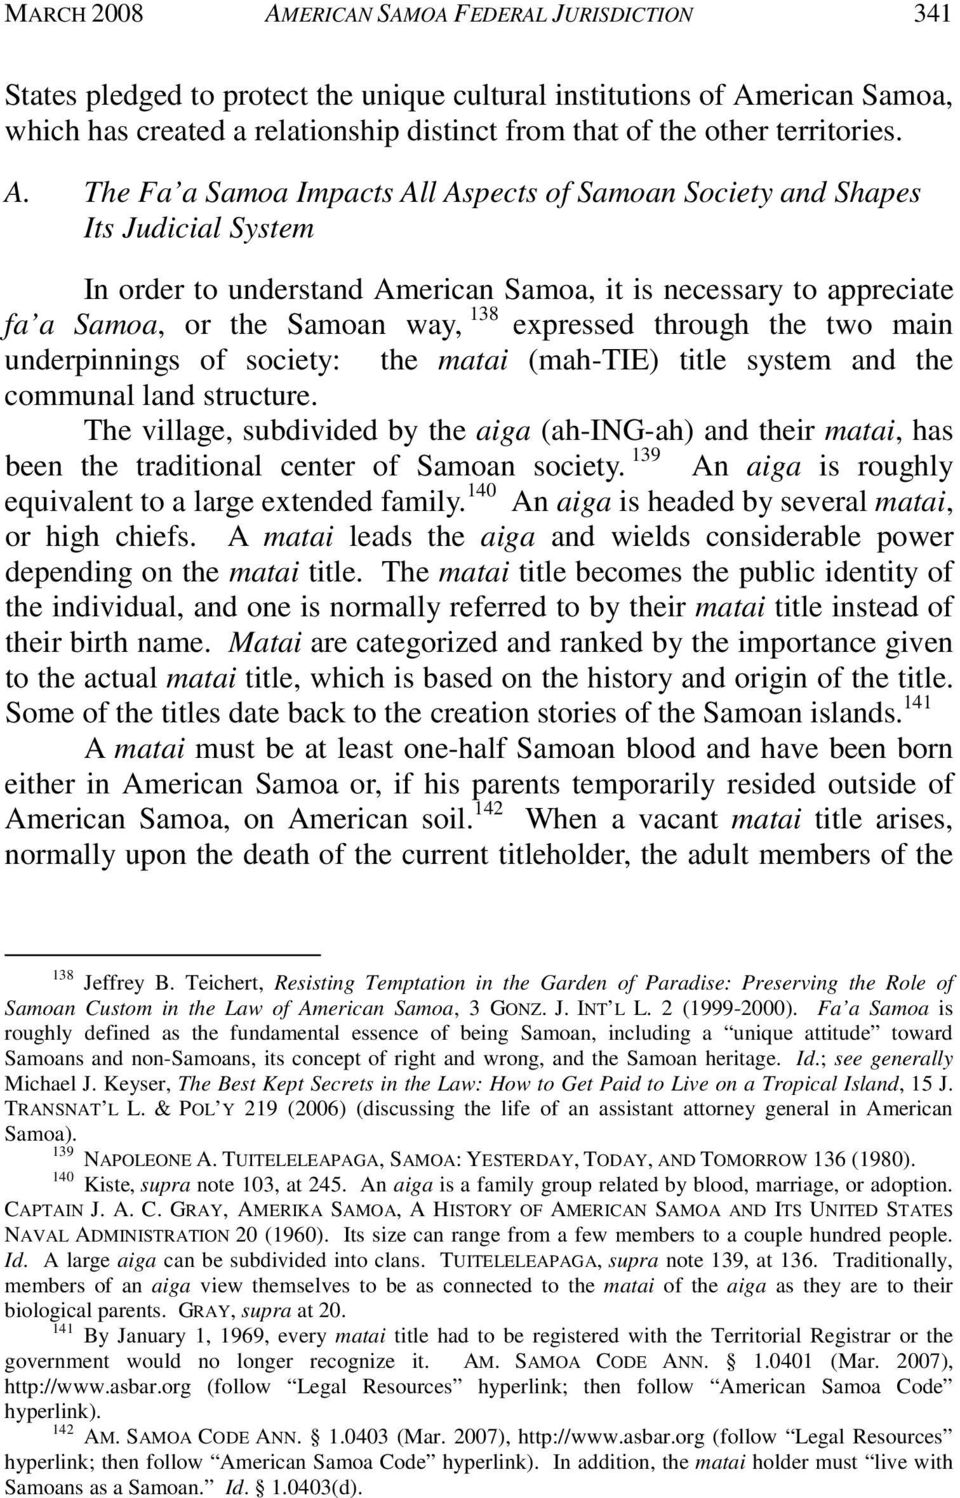 The Fa a Samoa Impacts All Aspects of Samoan Society and Shapes Its Judicial System In order to understand American Samoa, it is necessary to appreciate fa a Samoa, or the Samoan way, 138 expressed